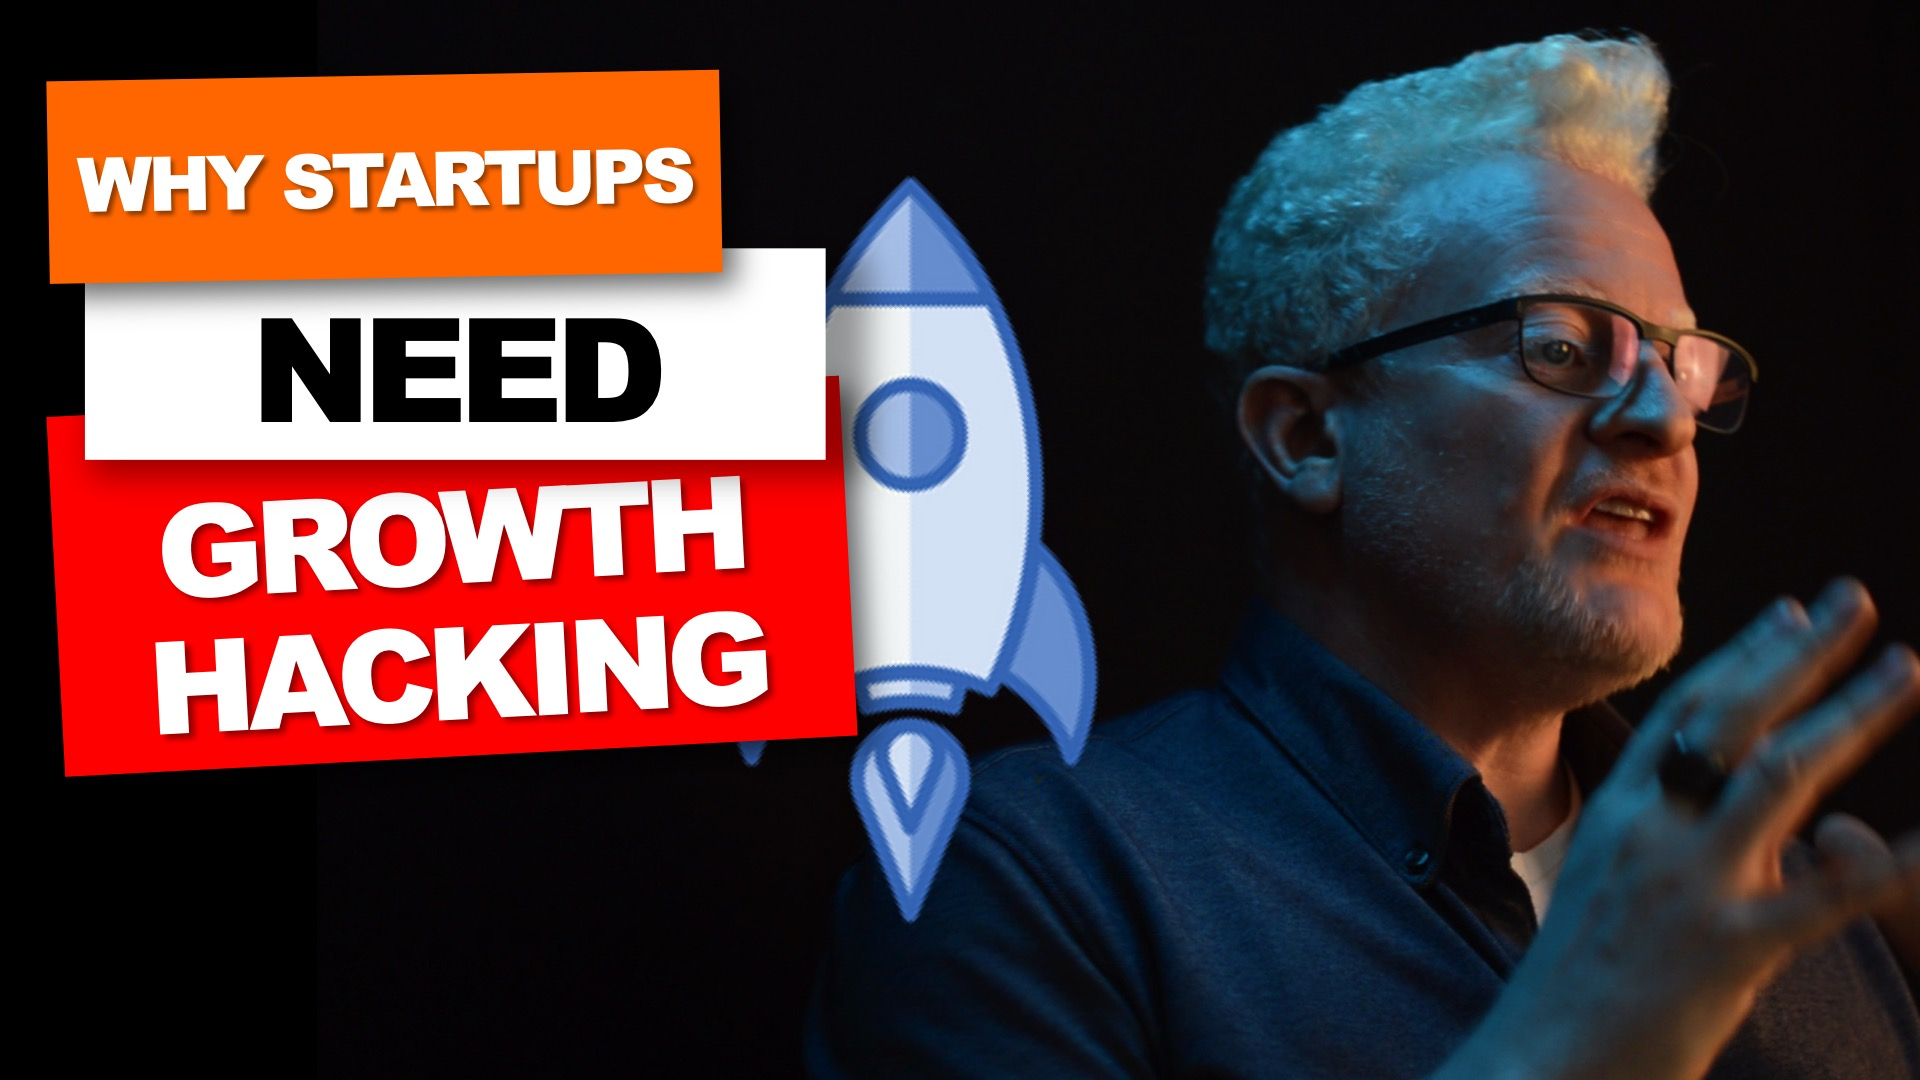 Why startups need growth hacking